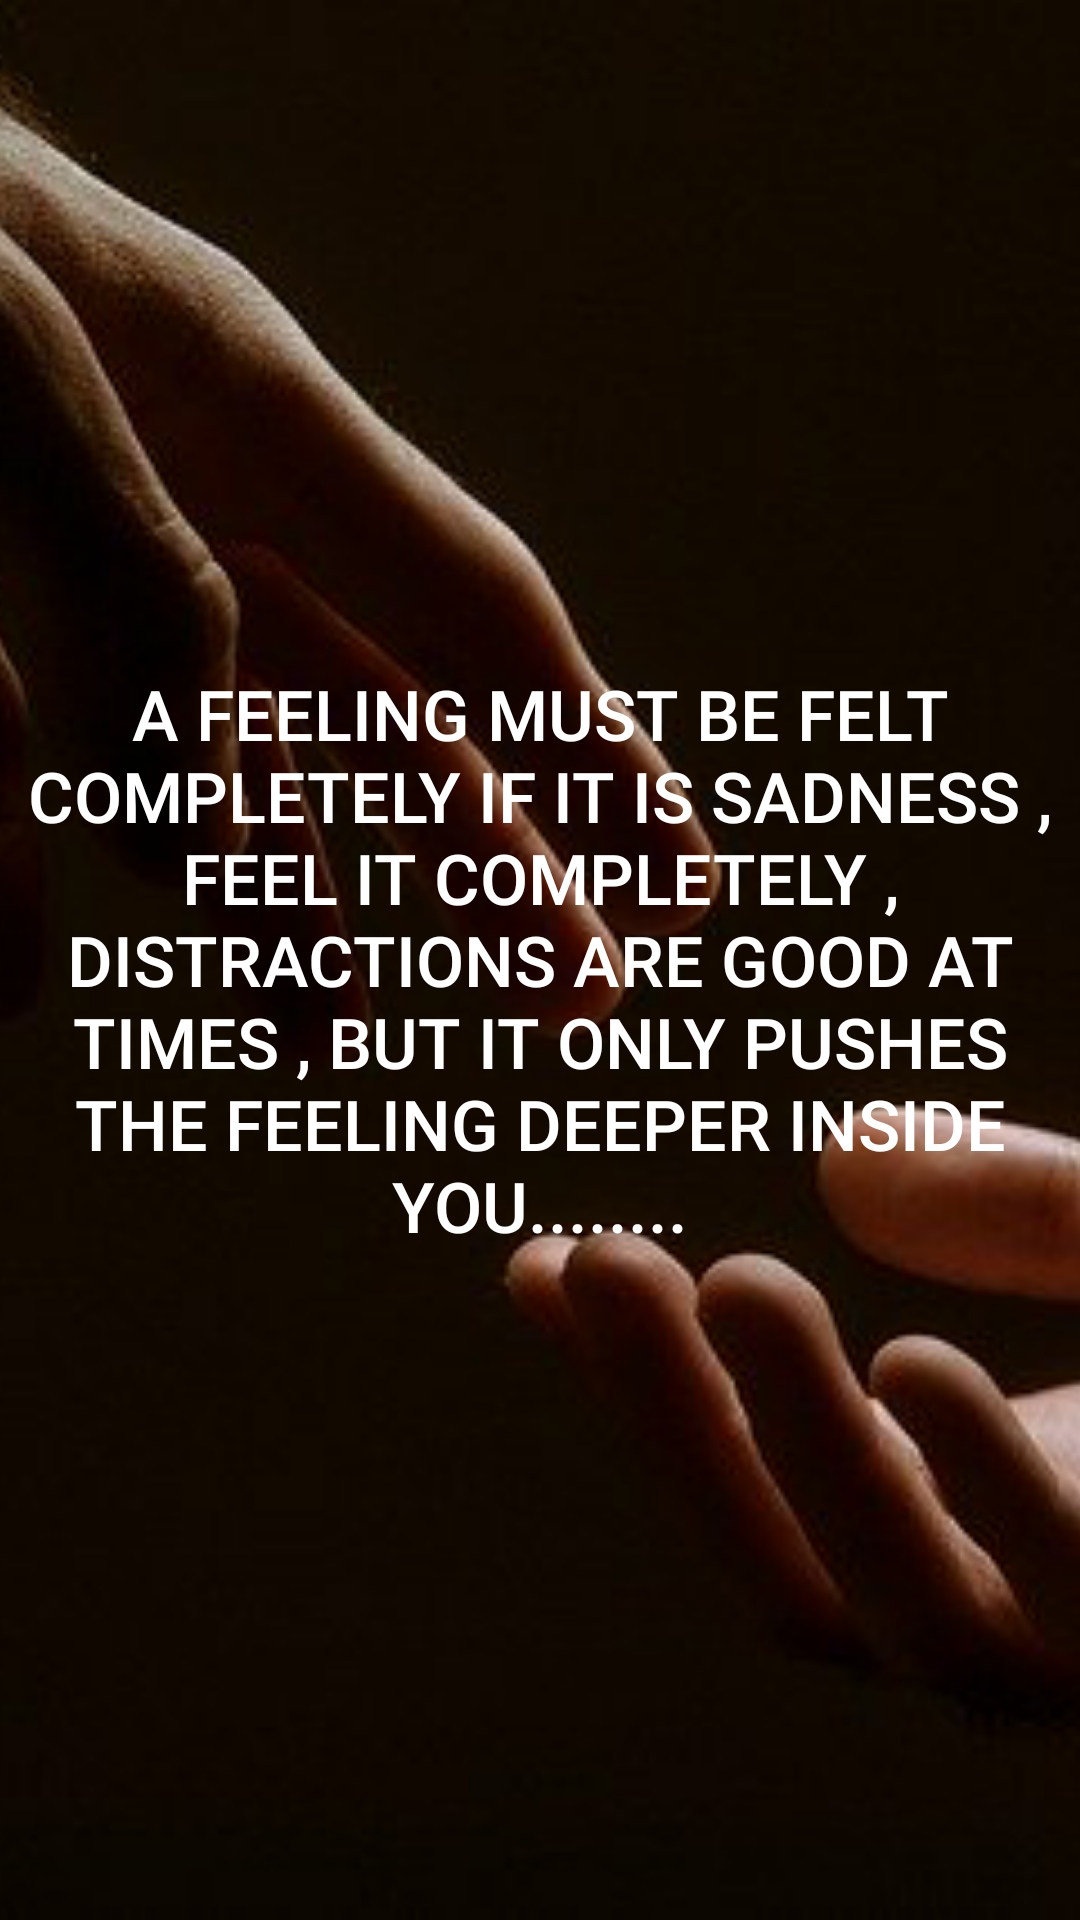 A FEELING MUST BE FELT COMPLETELY IF IT IS SADNESS , FEEL IT COMPLETELY , DISTRACTIONS ARE GOOD AT TIMES , BUT IT ONLY PUSHES THE FEELING DEEPER INSIDE YOU........